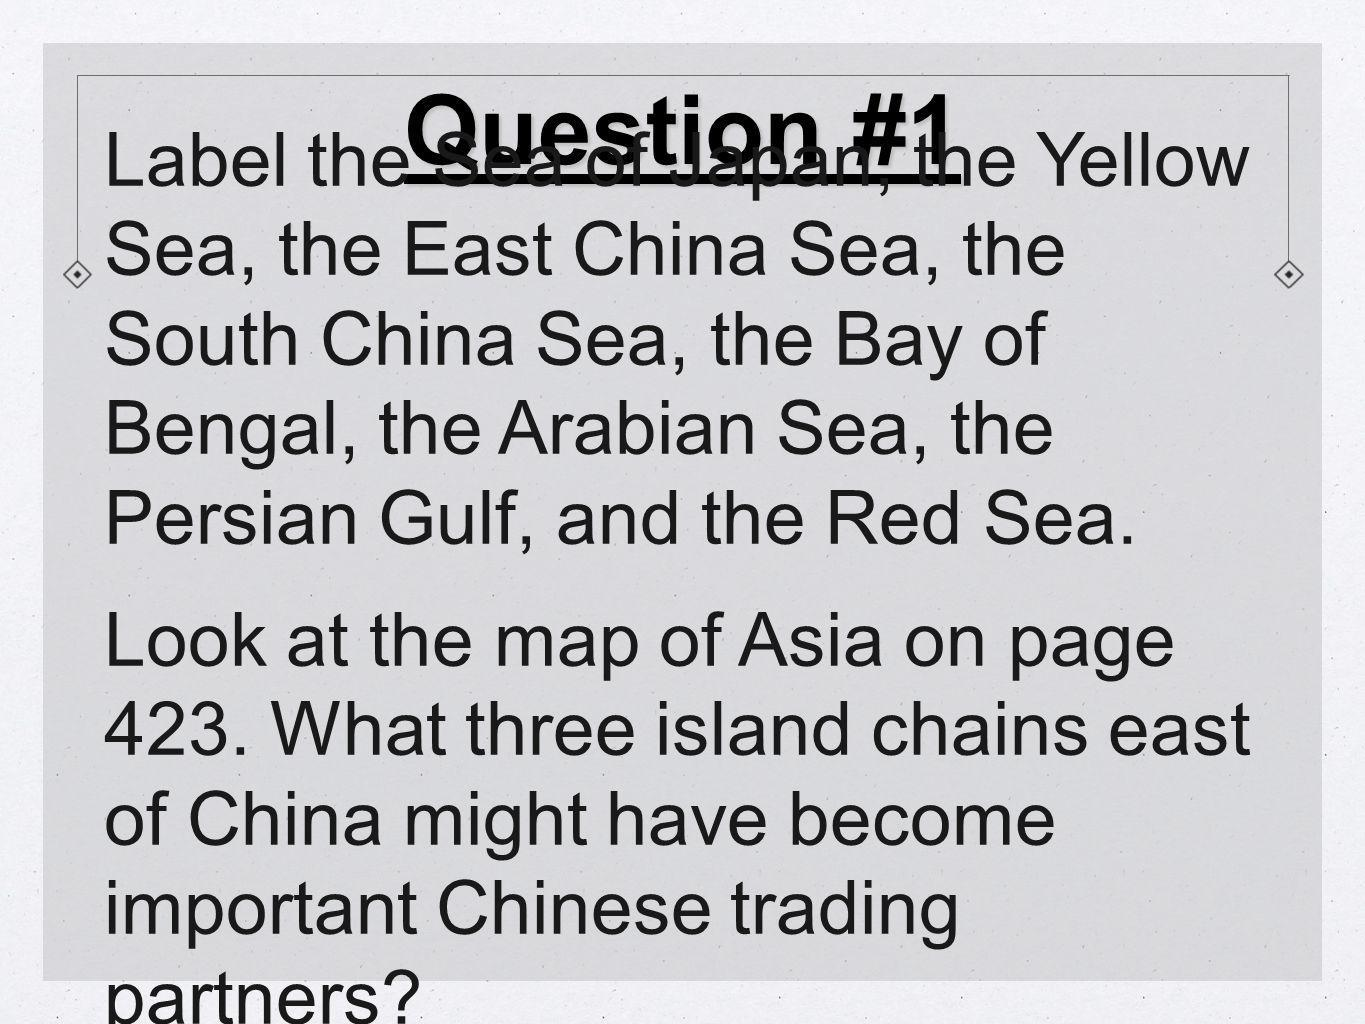 Question #1 Label the Sea of Japan, the Yellow Sea, the East China Sea, the South China Sea, the Bay of Bengal, the Arabian Sea, the Persian Gulf, and the Red Sea.